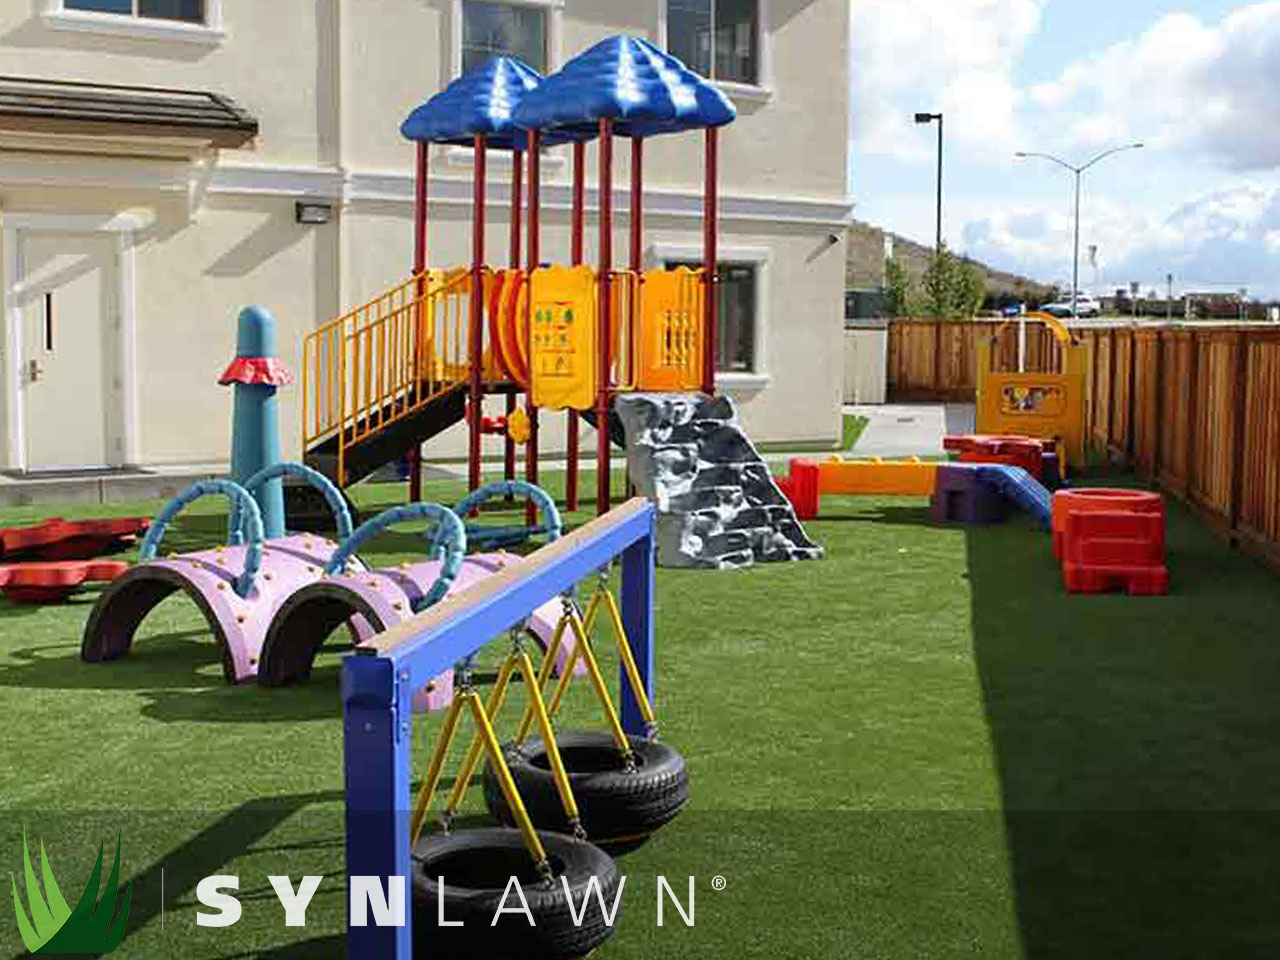 SYNLawn Playground Photo 11